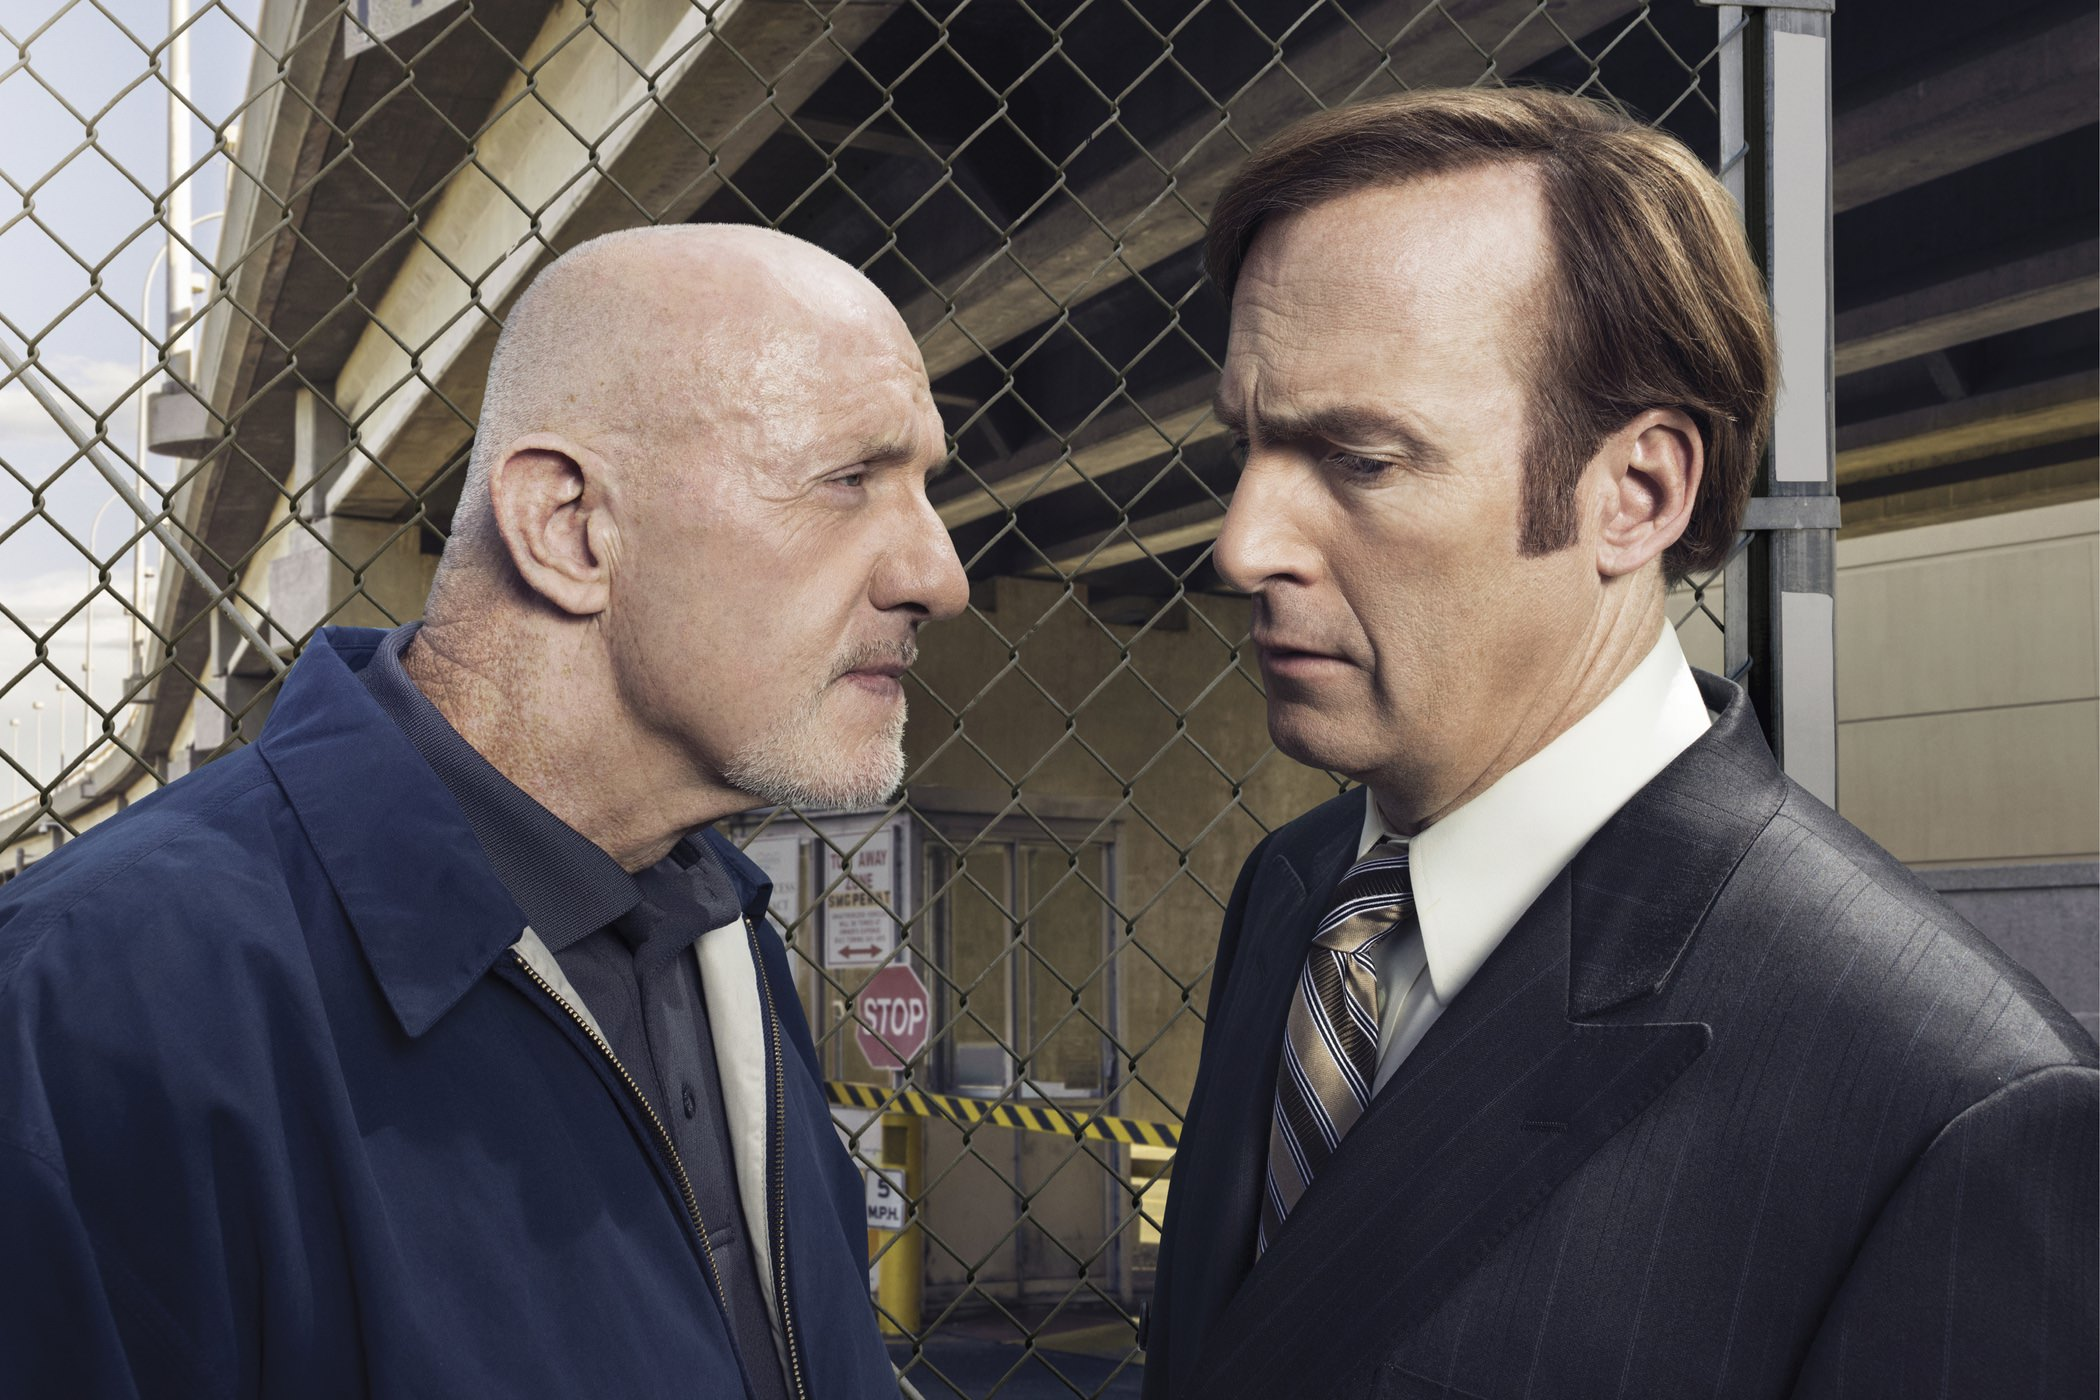 Better call saul bob odenkirk jonathan banks